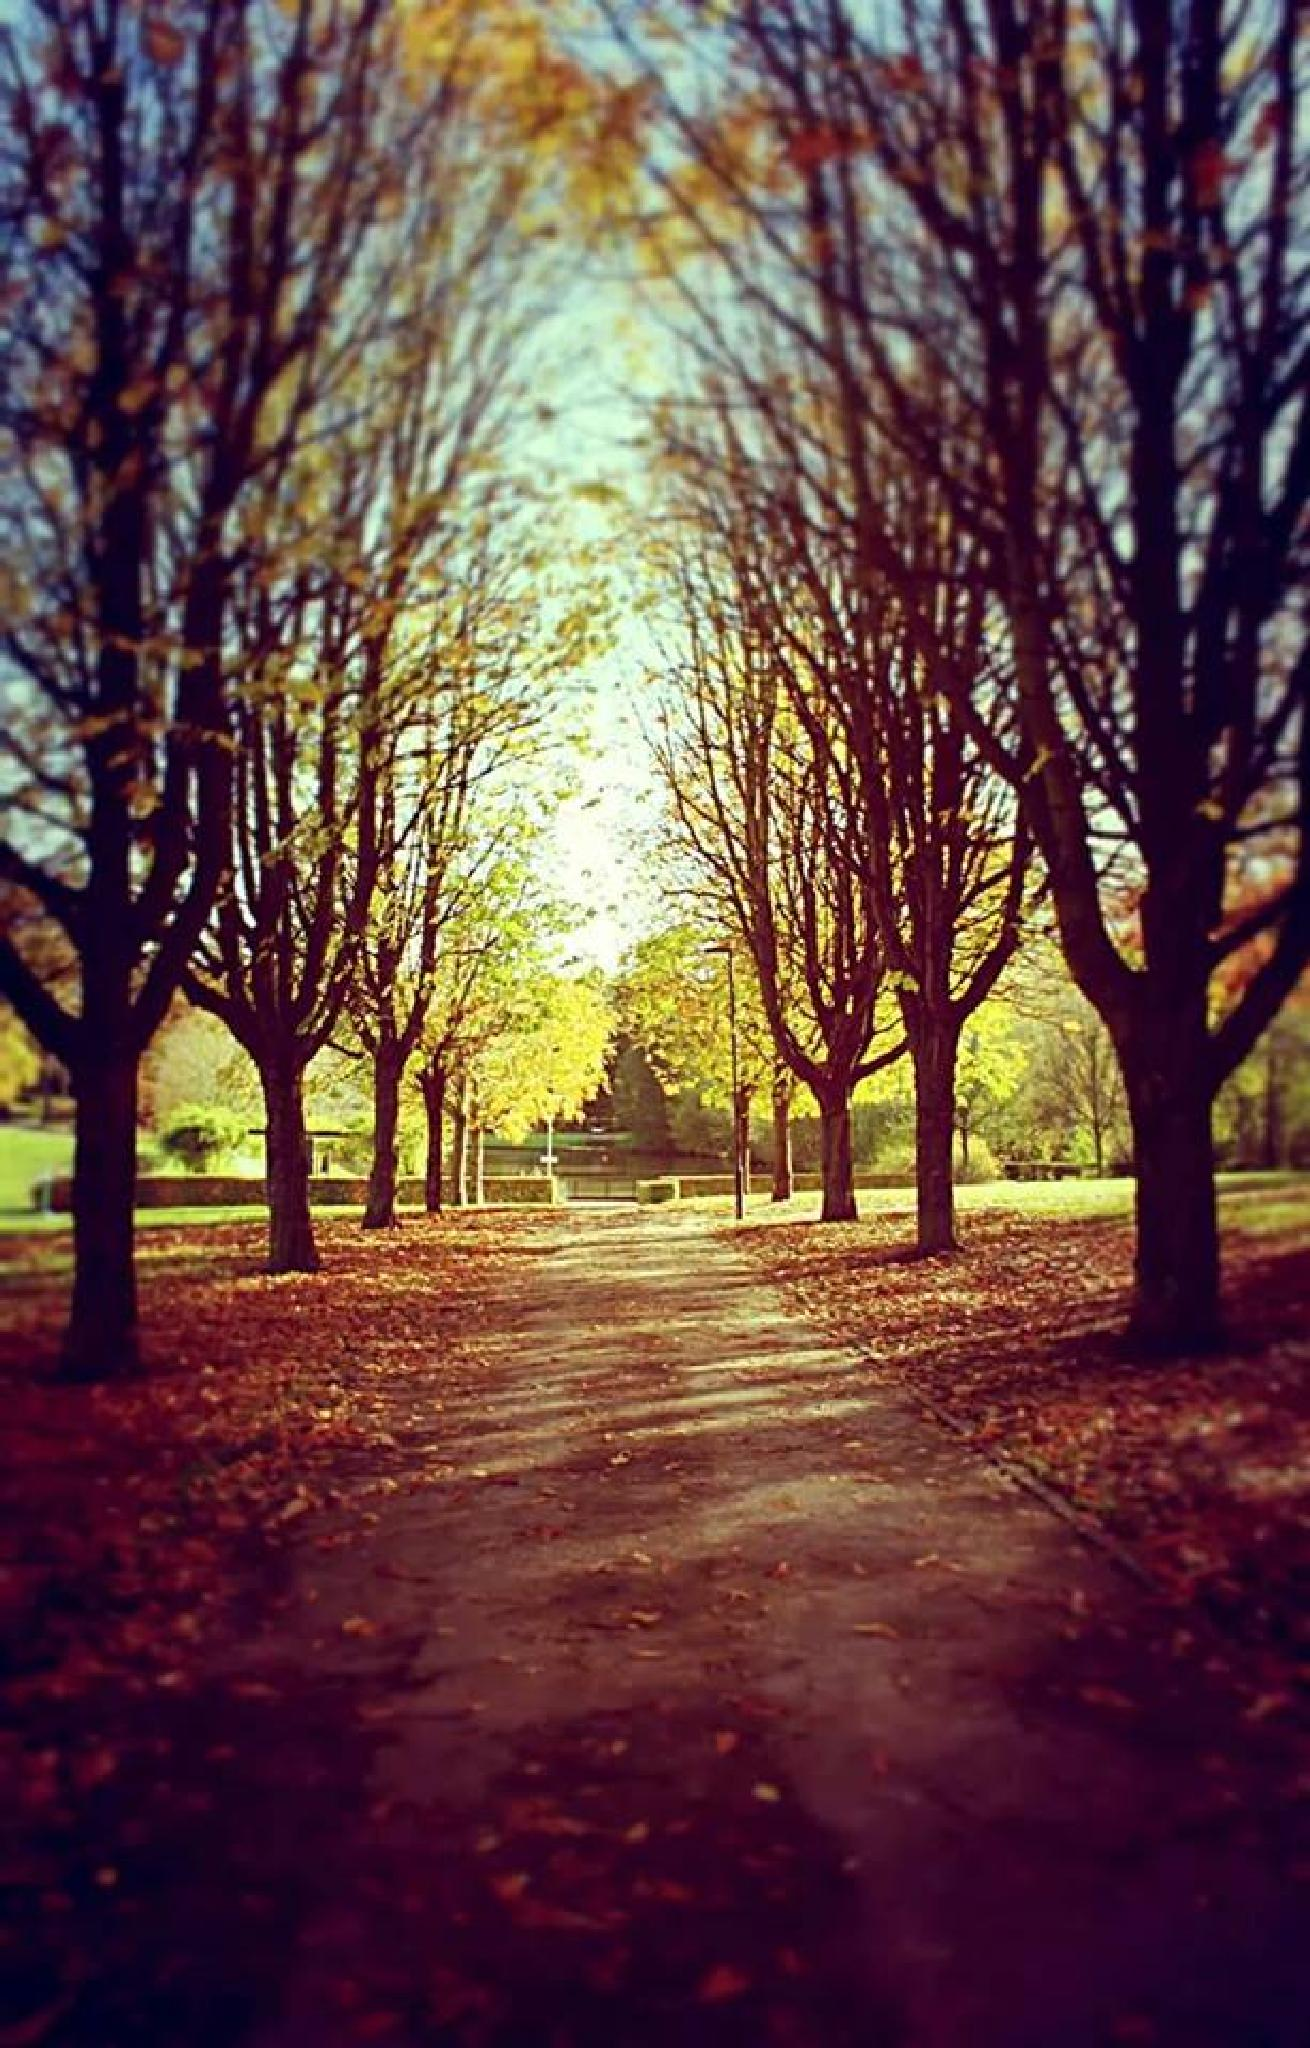 In a park in my hometown #Vaals, on a fall day by audrey.verhoevenernst